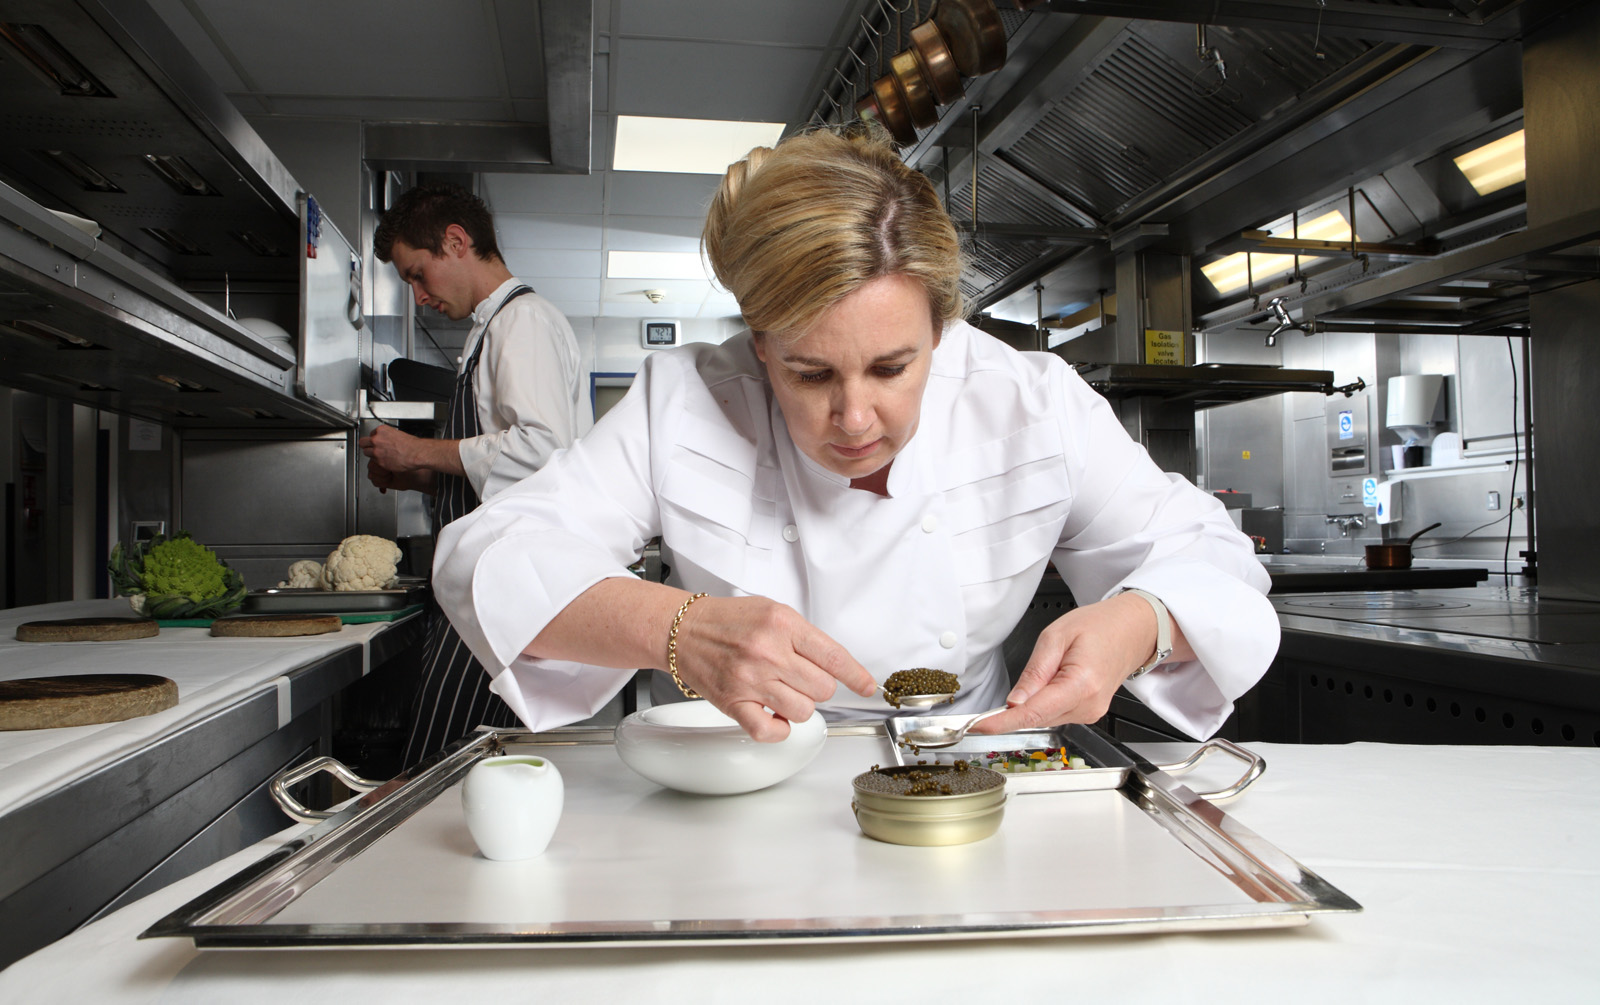 Cocoa Butter Hélène Darroze Is The Best Female Chef For 2015